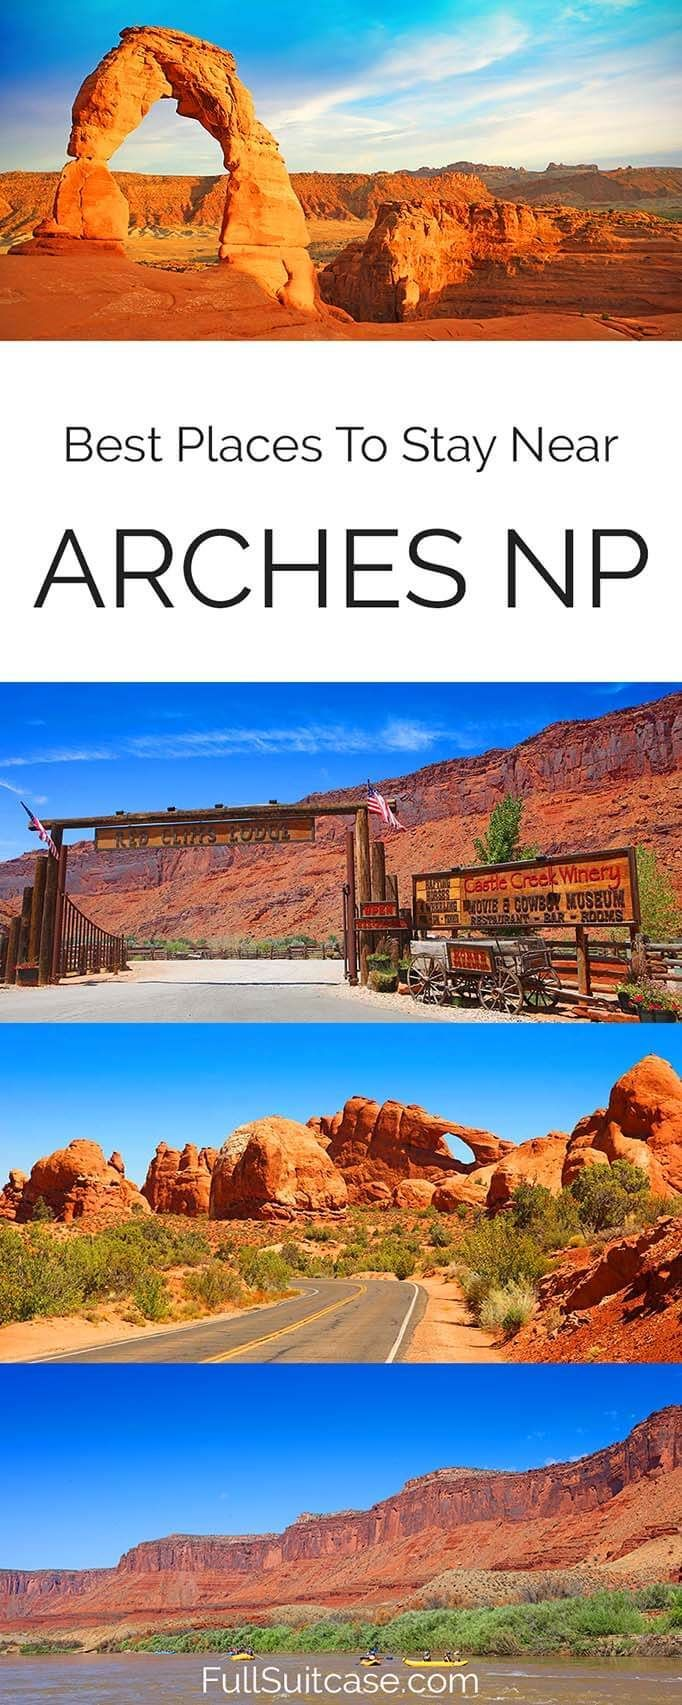 Best Moab hotels and accommodation near Arches National Park in Utah USA #archesnationalpark #utah